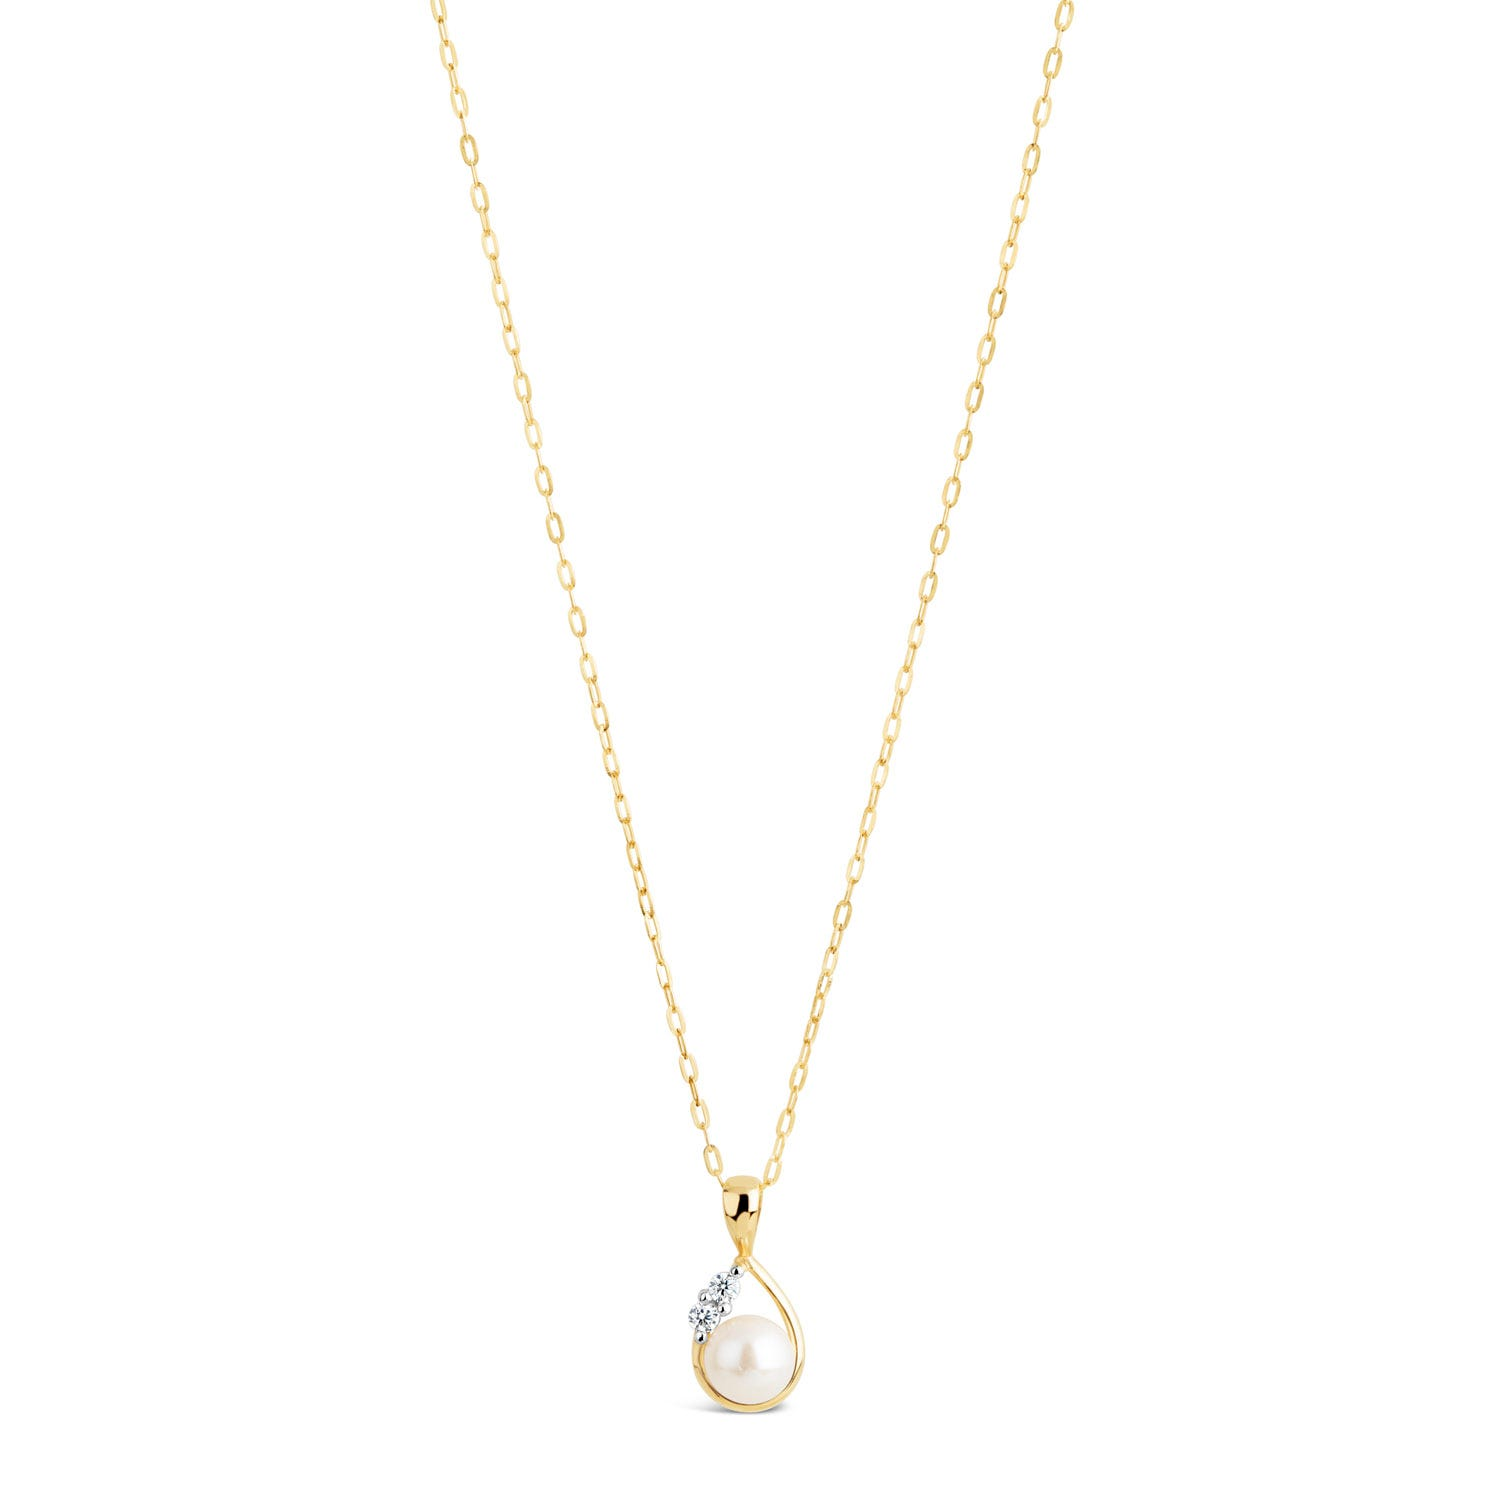 9ct Gold Pearl and Cubic Zirconia Pendant